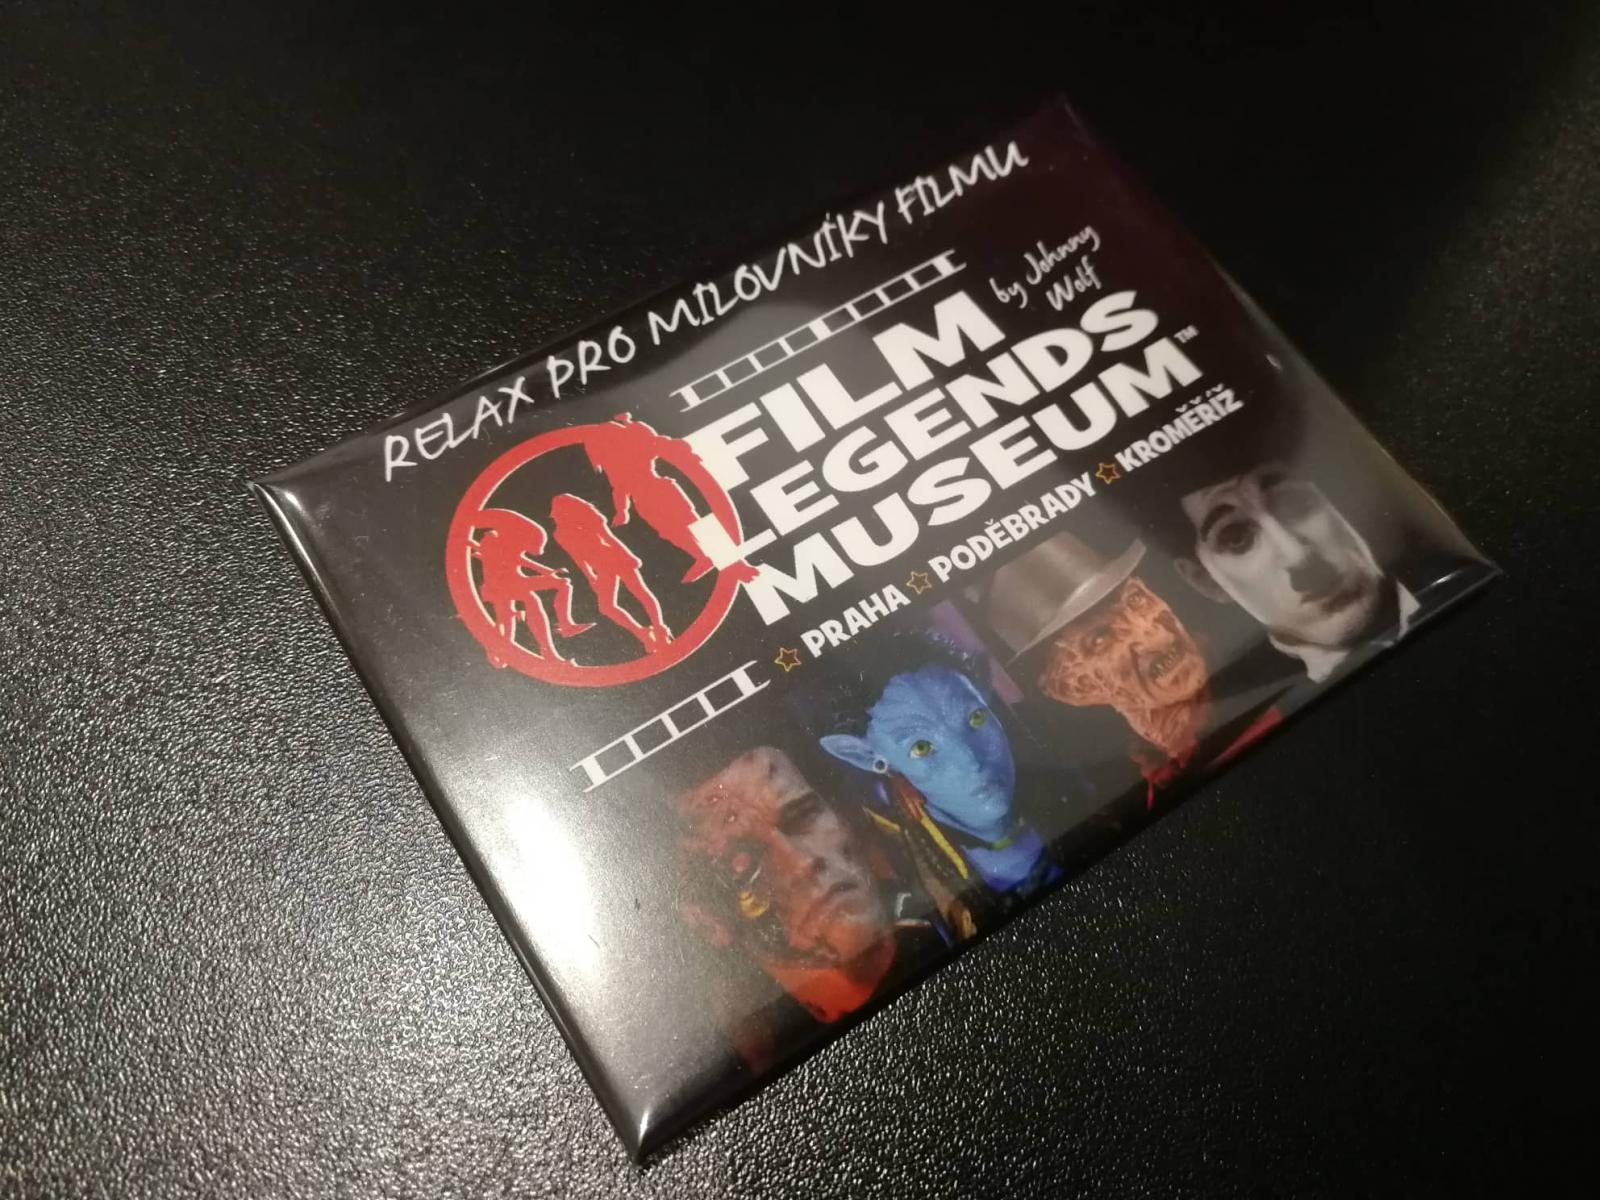 FILM LEGENDS MUSEUM STANDART MAGNET A